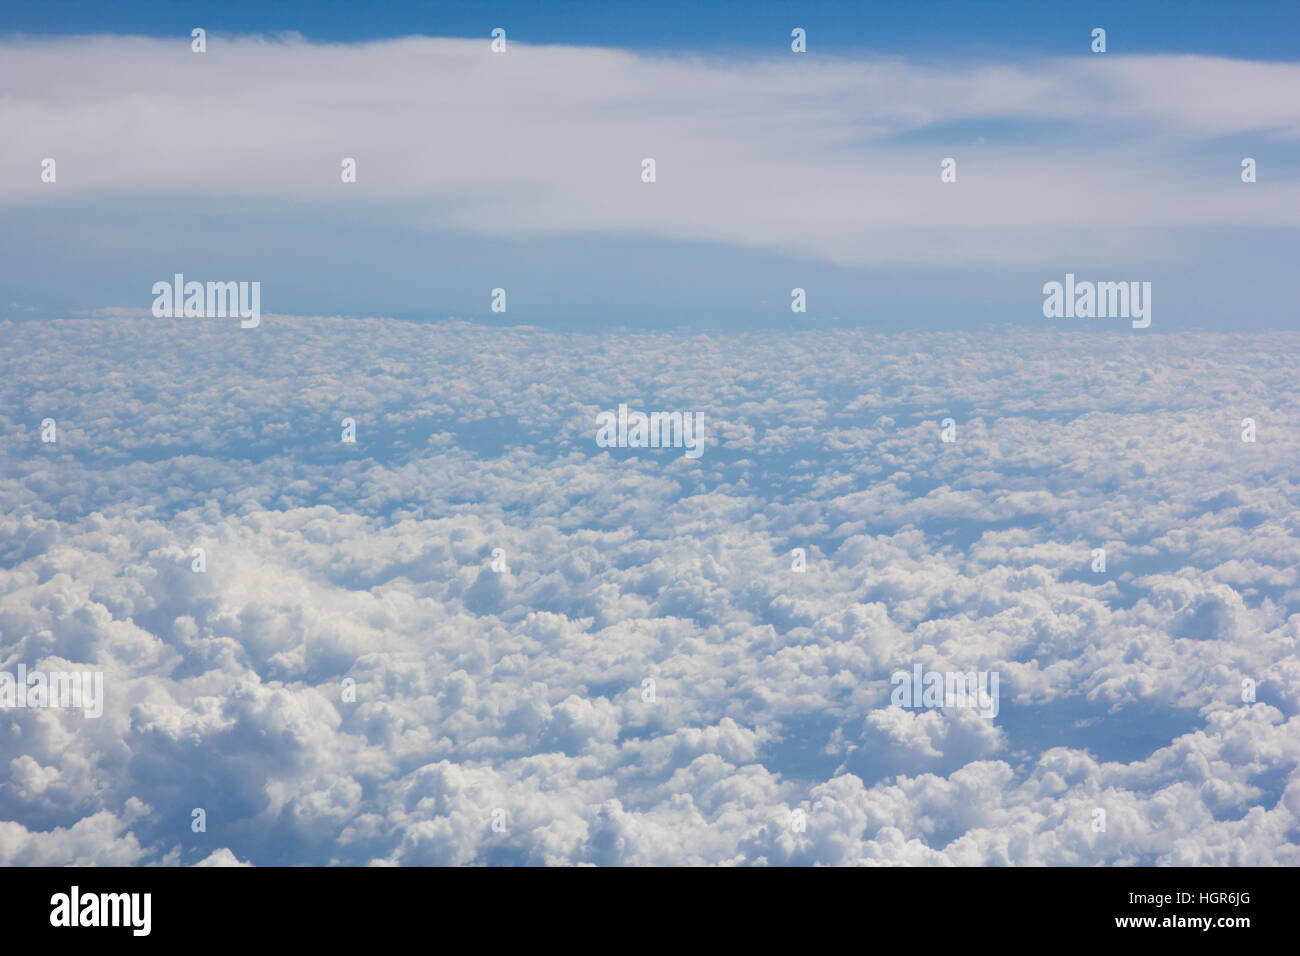 above cloud gradient blue sky background only - Stock Image